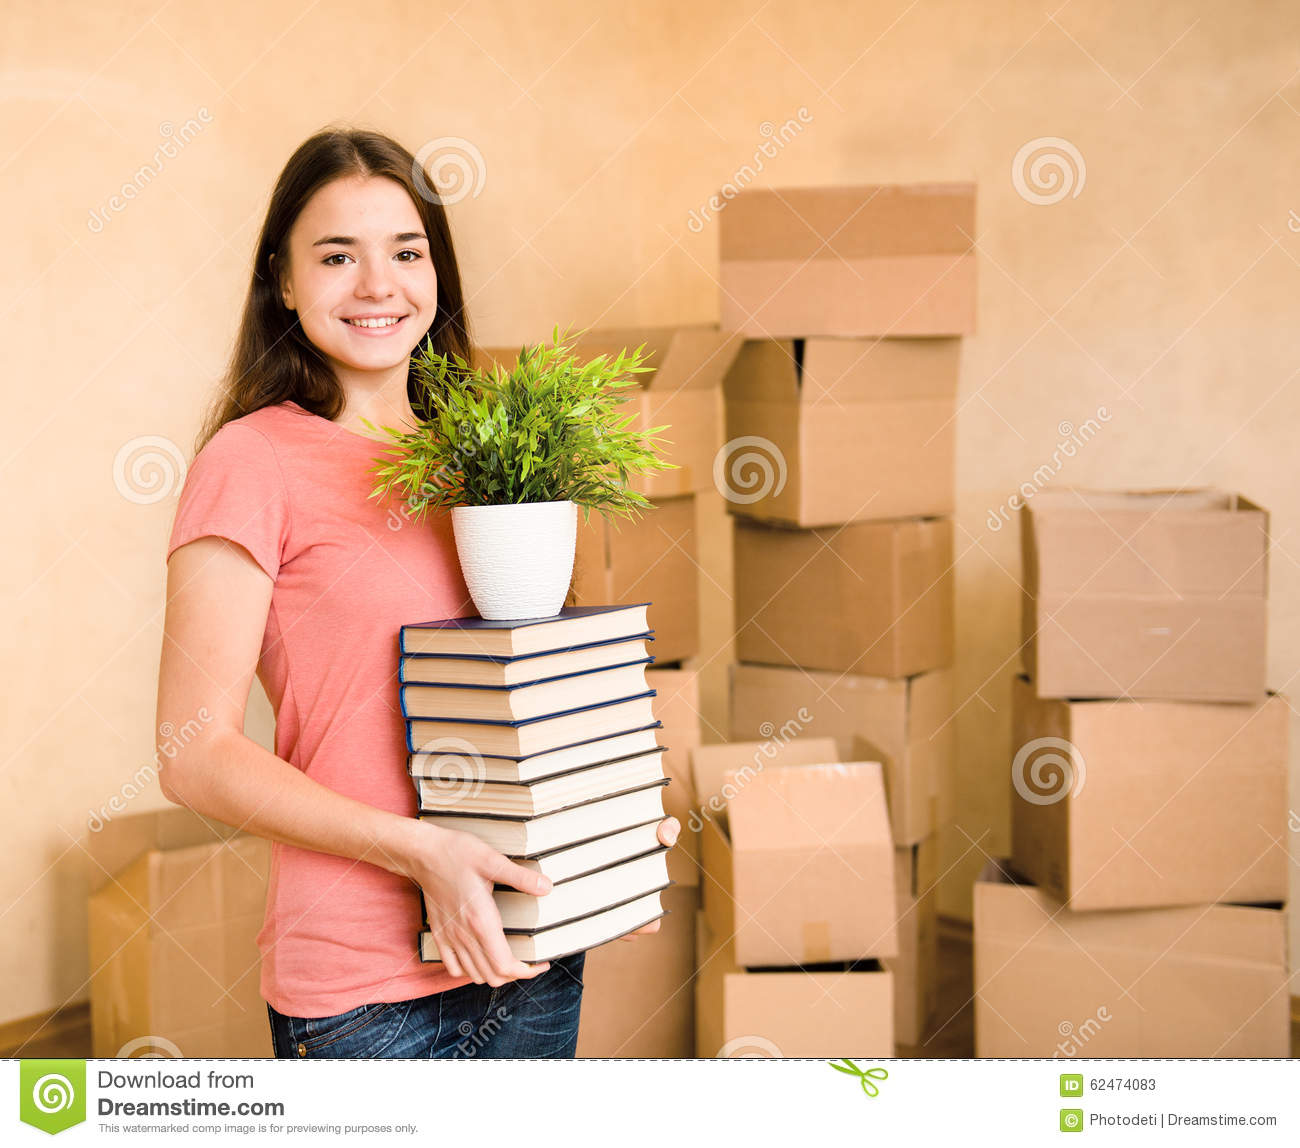 Young woman moving house to college, holding pile books and plan